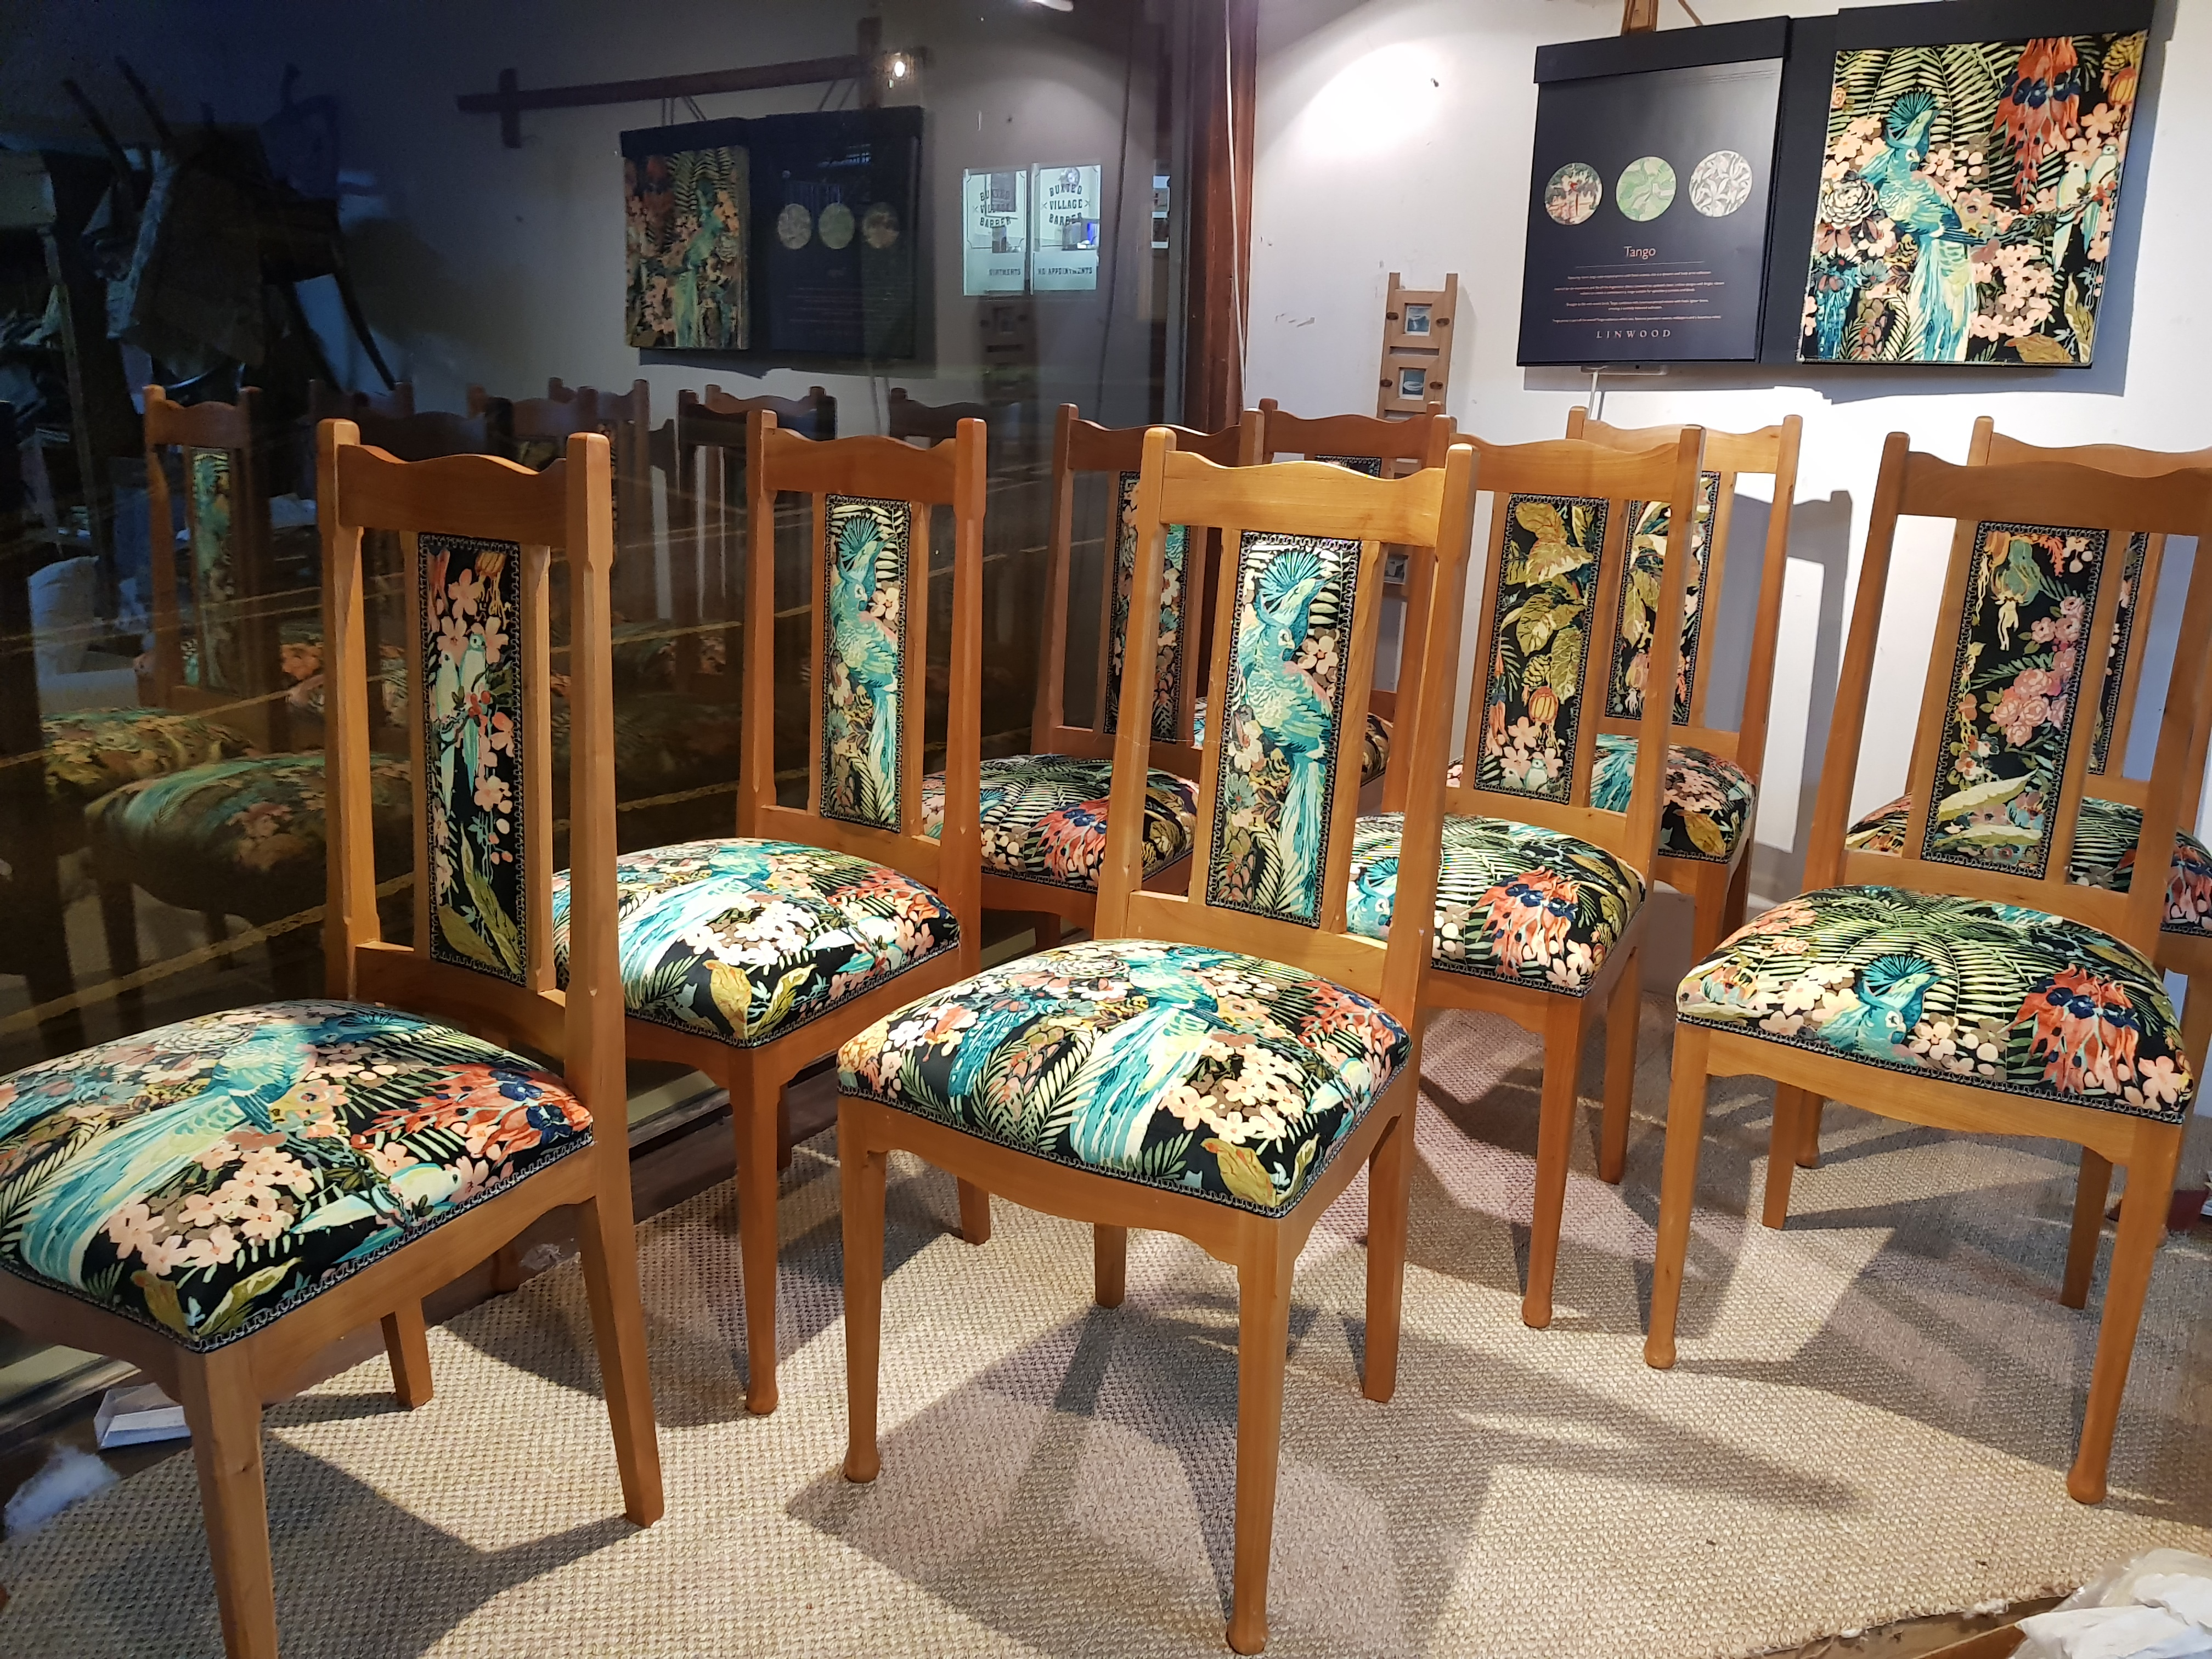 Dining Chairs In Shop Window